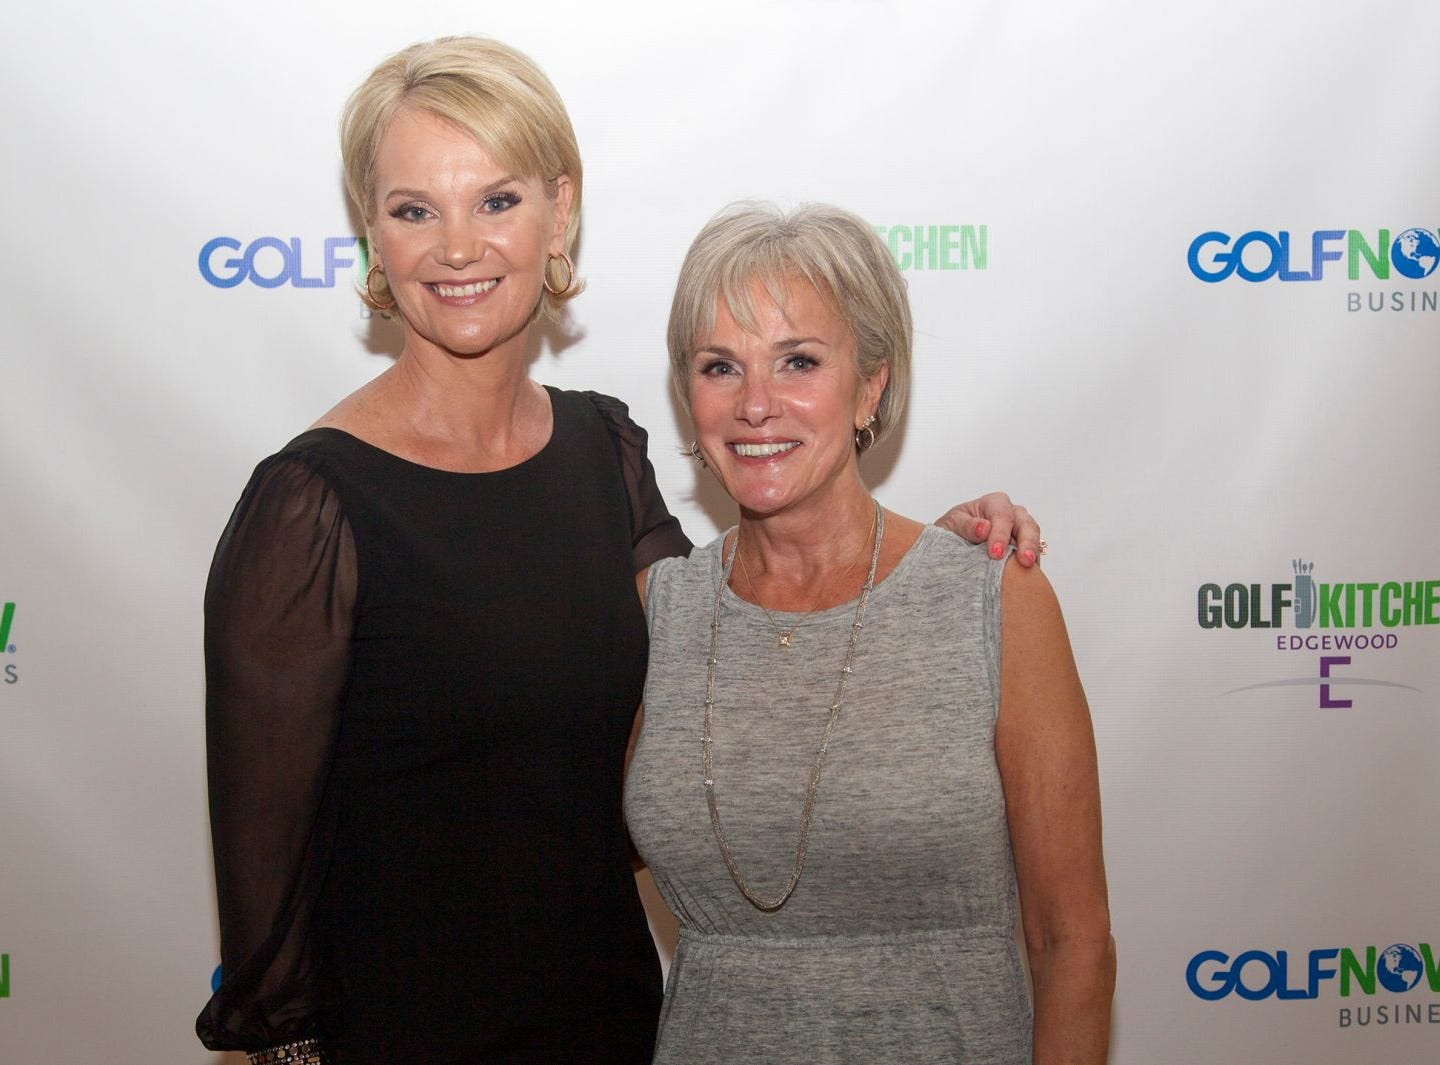 "Diana DeLucia (Editor Golf Kitchen) and Candice Timmerman. Edgewood Country Club, in partnership with Golf Kitchen magazine, host the ""Golf Kitchen/Edgewood Fine Dining Soirée and Golf Kitchen Culinary Excellence Awards.""  10/04/2018"